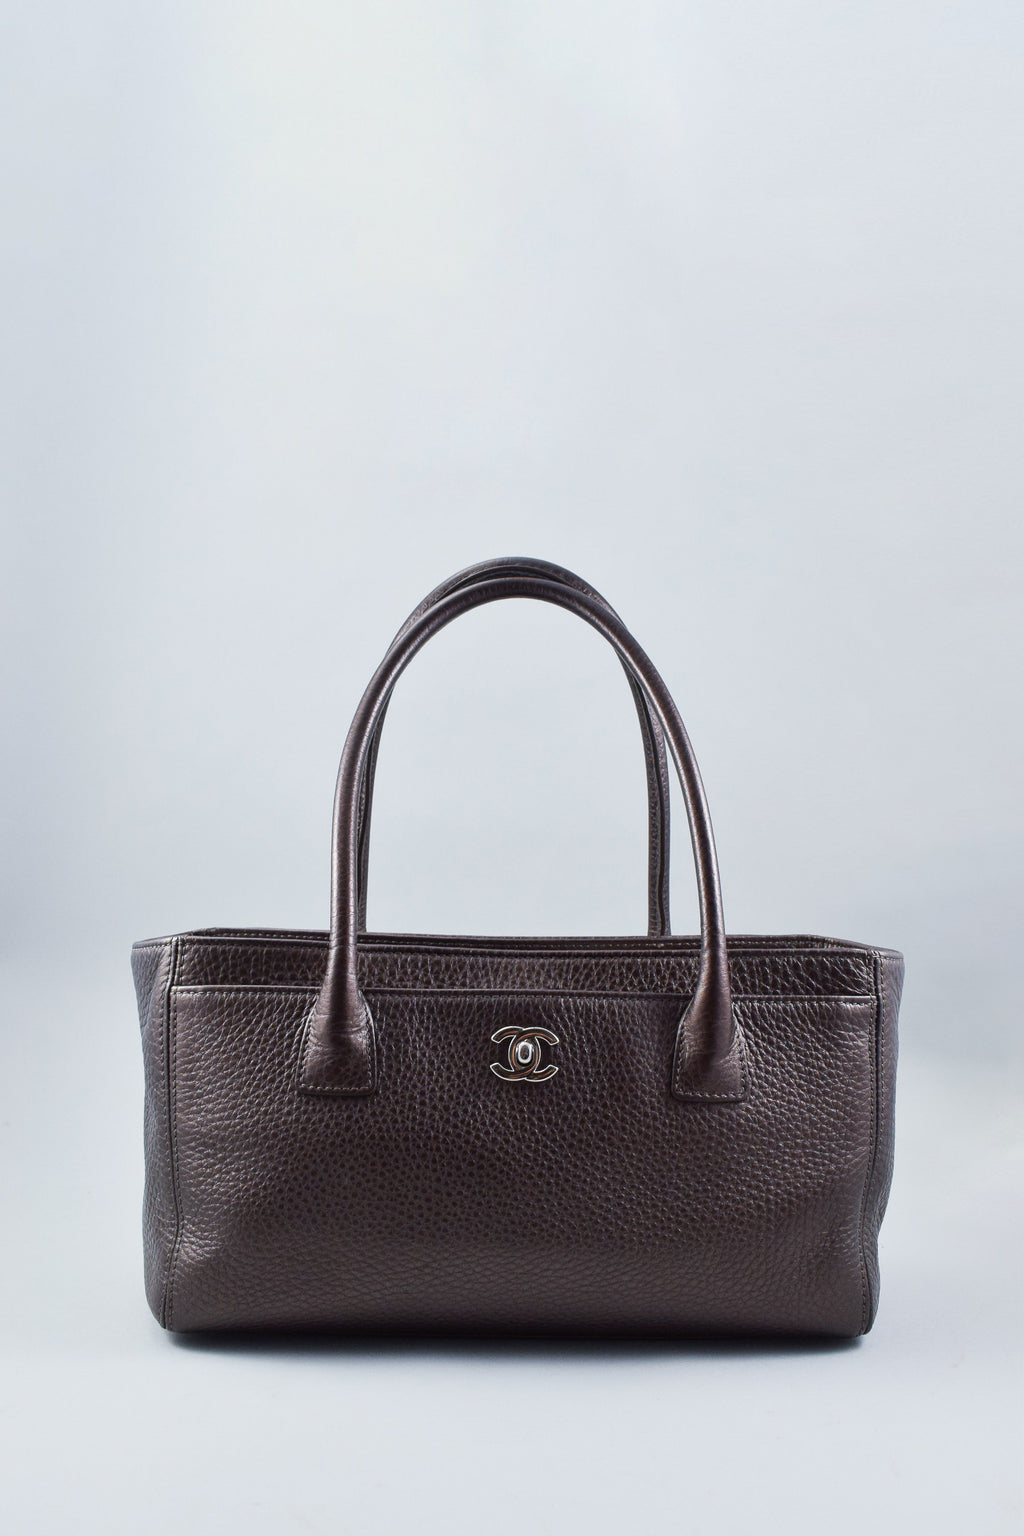 Chanel Metallic Brown Small Executive Cerf Tote